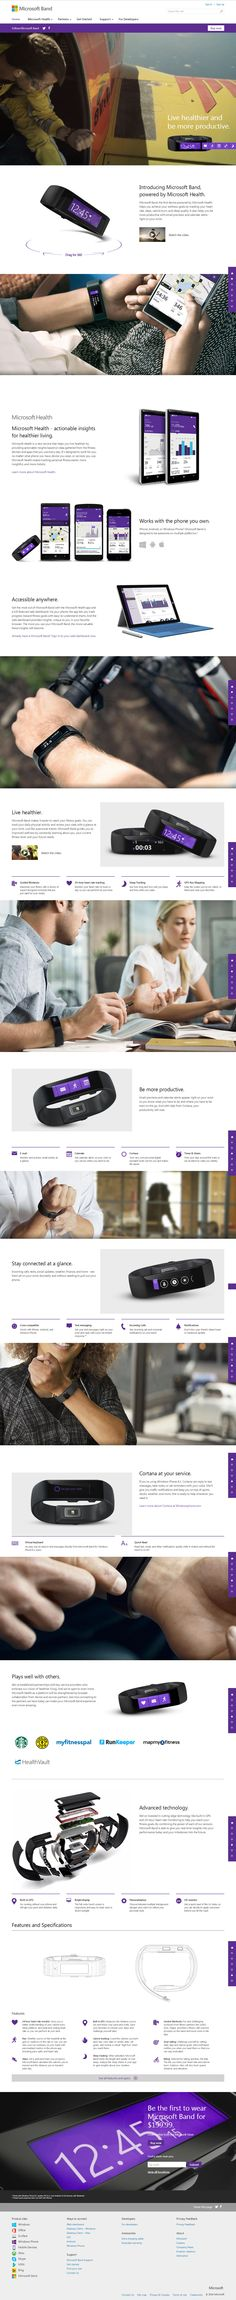 Microsoft Band, the first device powered by Microsoft Health, helps you achieve your wellness goals by tracking your heart rate, steps, calorie burn, and sleep quality. Microsoft Band, Web Design, Sleep Quality, Heart Rate, Burn Calories, Wellness, Goals, Health, Design Web